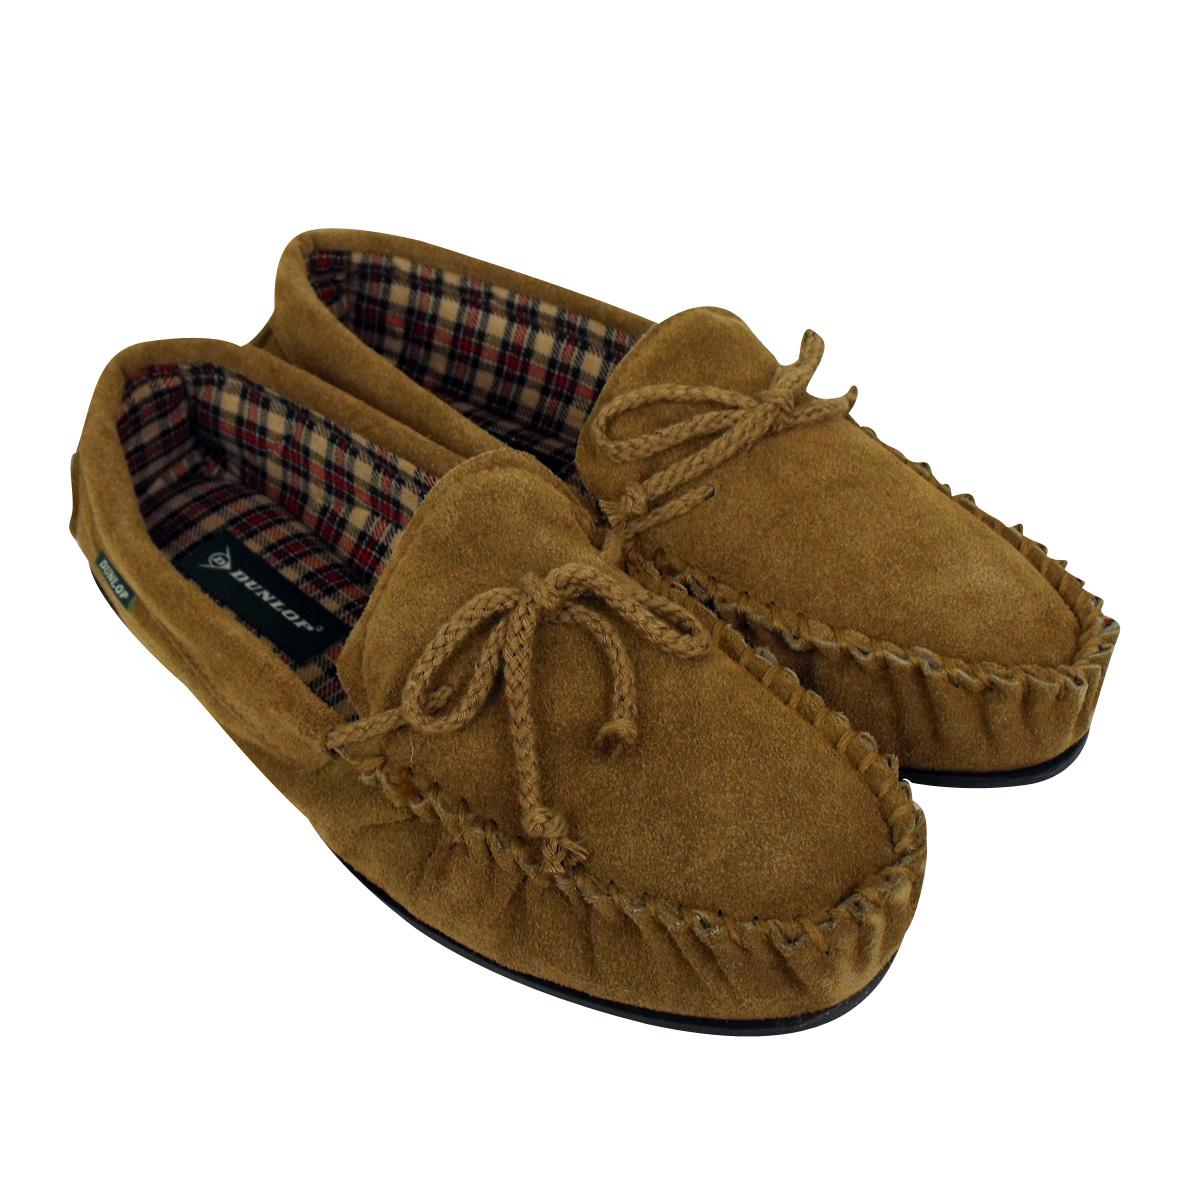 Product - Deluxe Comfort Mens Faux Suede Memory Foam Dress Slipper, Size - Warm And Stylish Tartan Plaid Fleece Lining - Durable Non-Marking Ruber Sole - Soft Faux Suede Outer - Mens Slippers, Camel Brown.